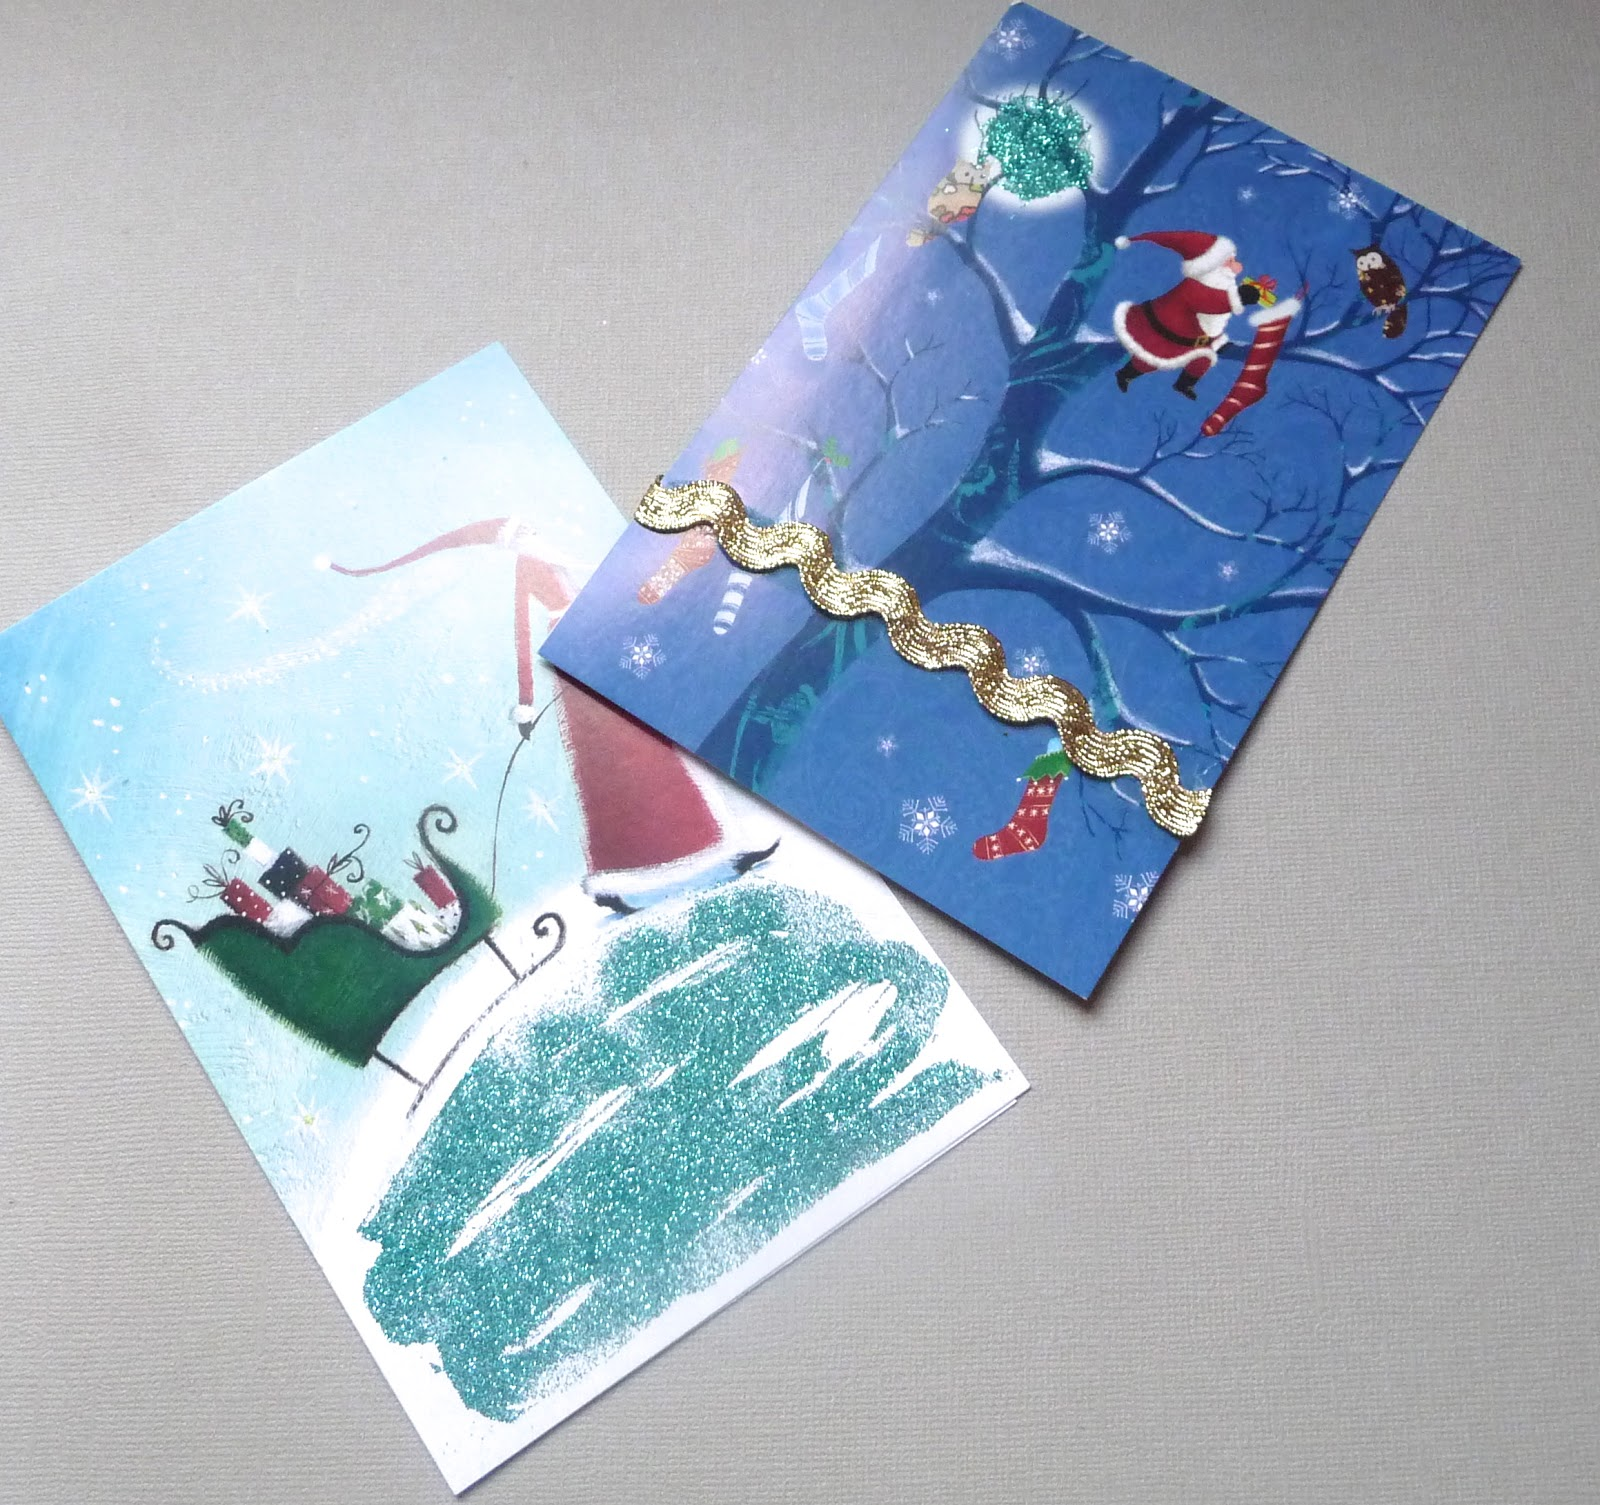 Middle tennessee crafts handmade holiday cards tips for your simple touches for elegant cards kristyandbryce Gallery